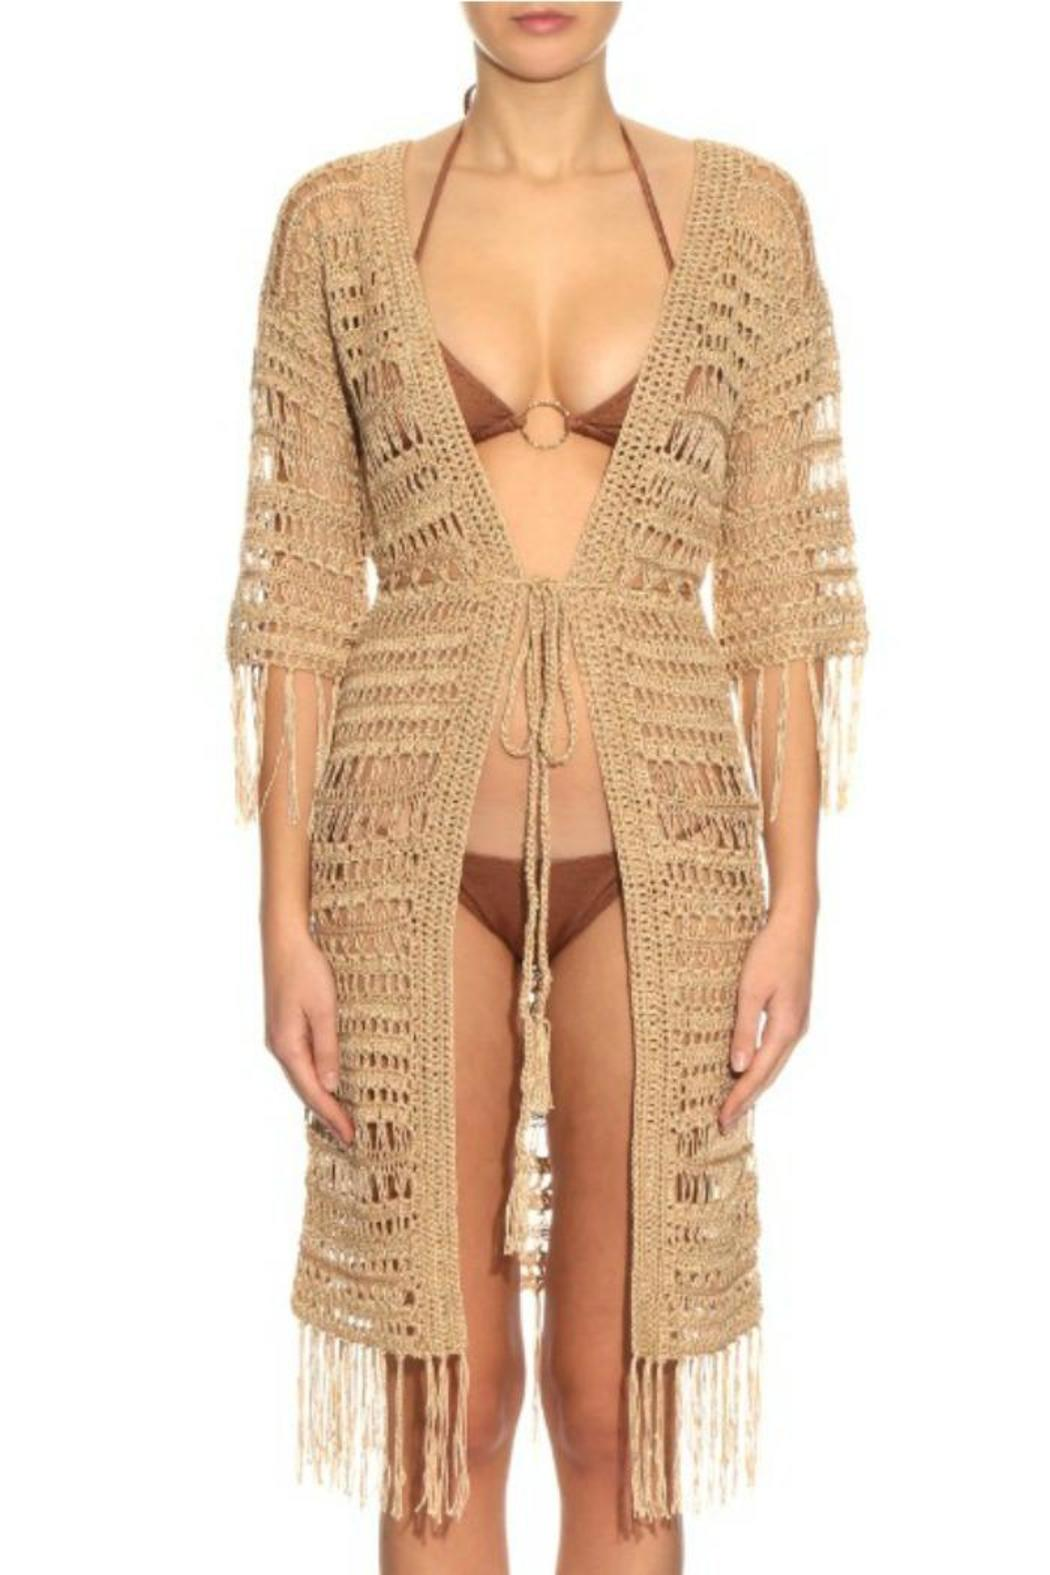 Melissa Odabash Naomi Crochet Cover-Up from Massachusetts by Bloom ...